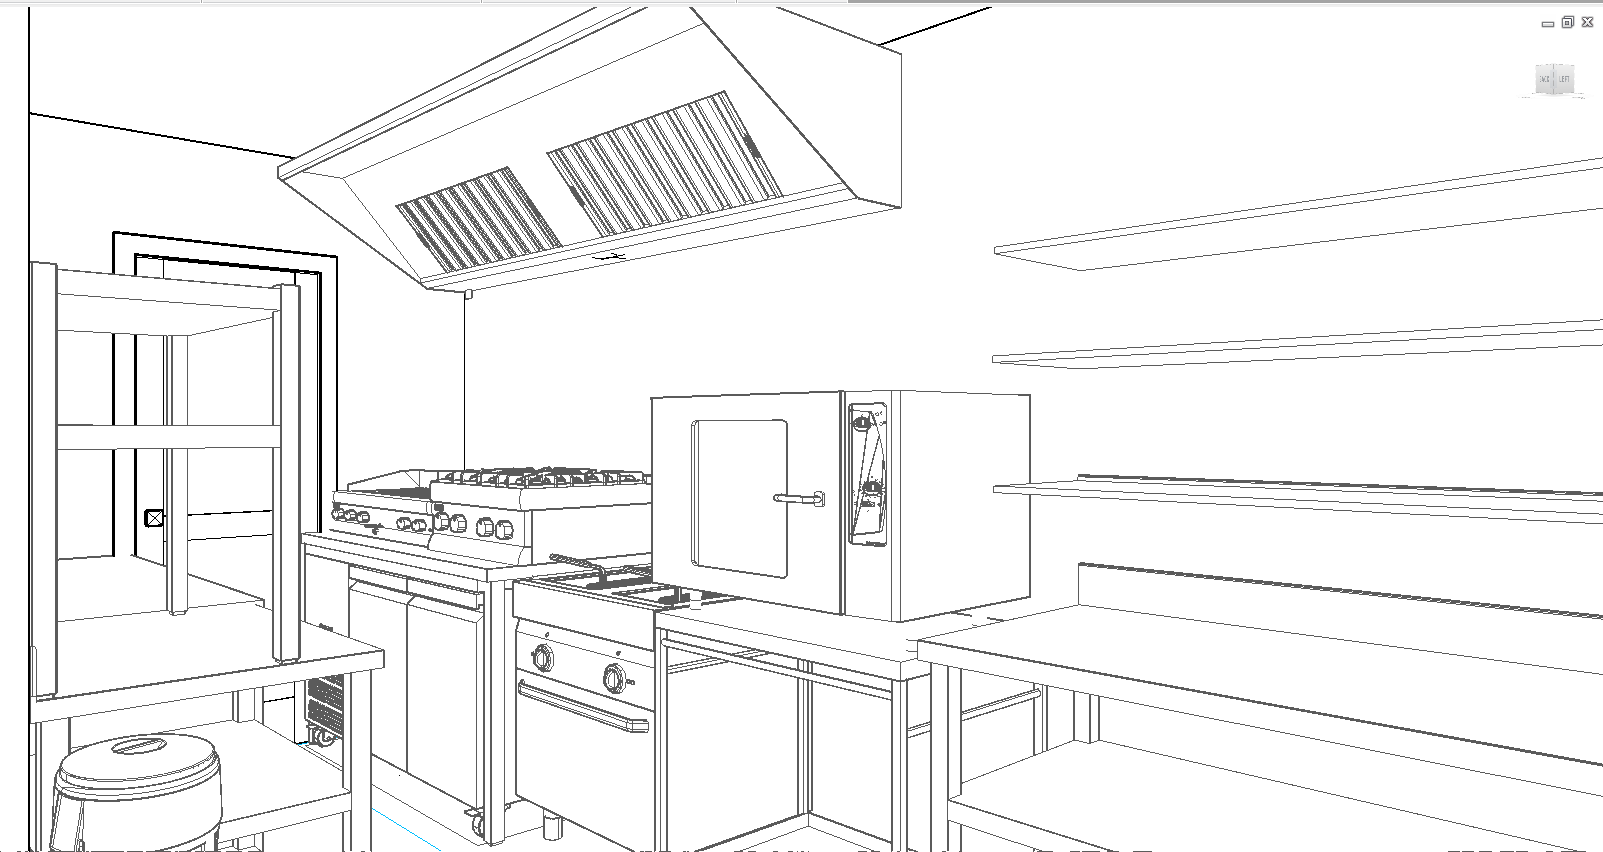 4 Story Cafe drawings